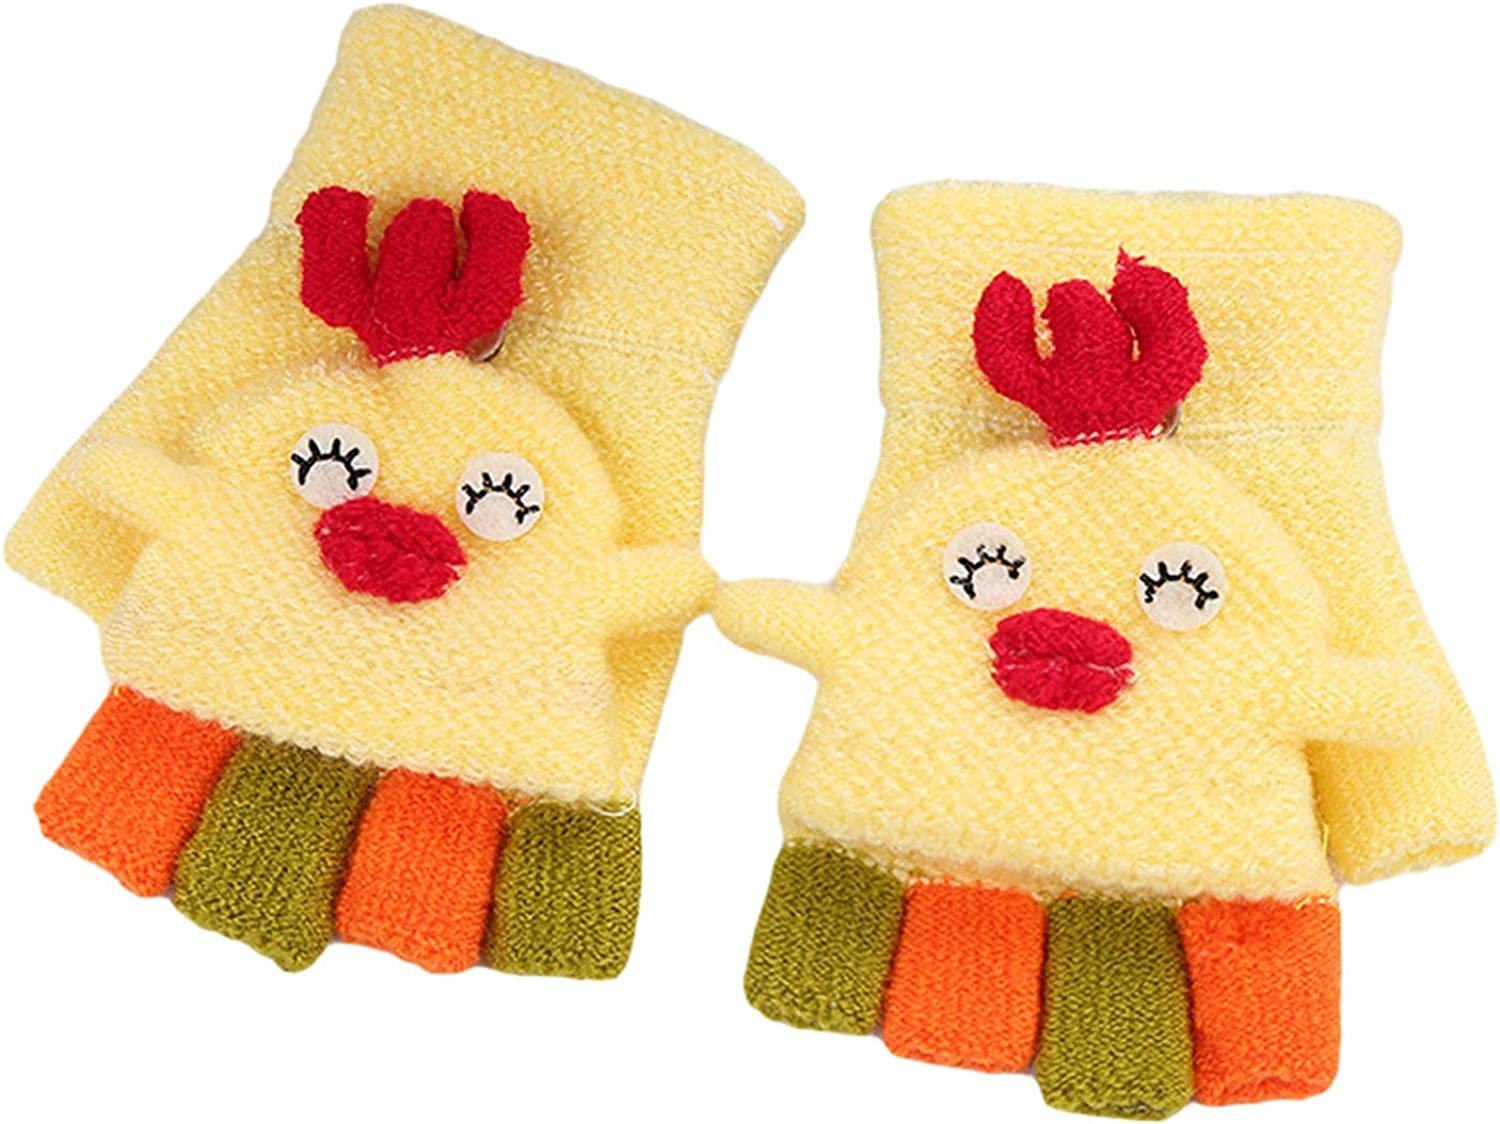 1-5 Years Kids Convertible Mittens, Chick Knitted Chunky Thermal Girls Winter Gloves for Holiday